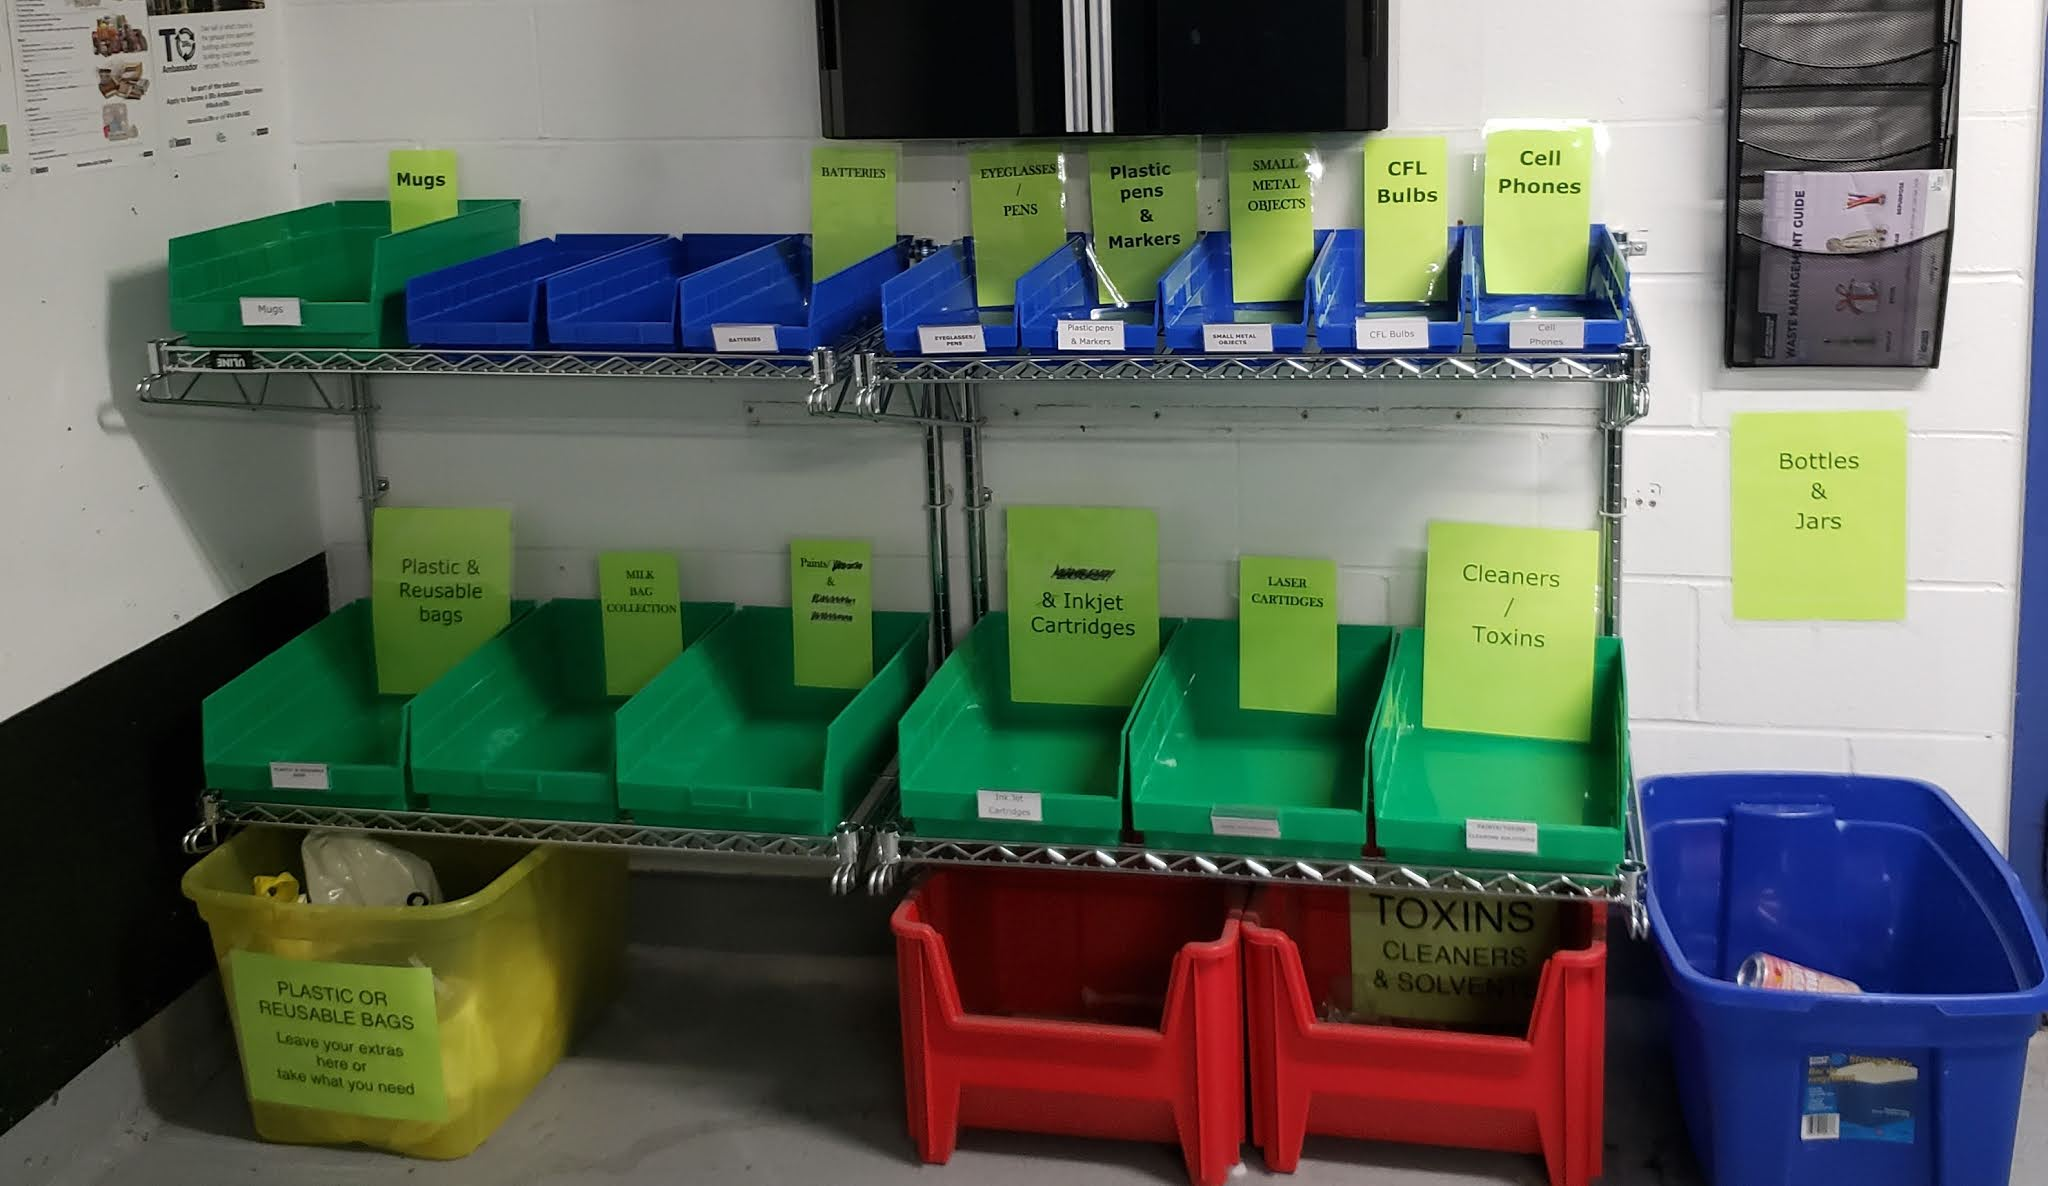 IMAGE: Special waste collection area in a high-rise building